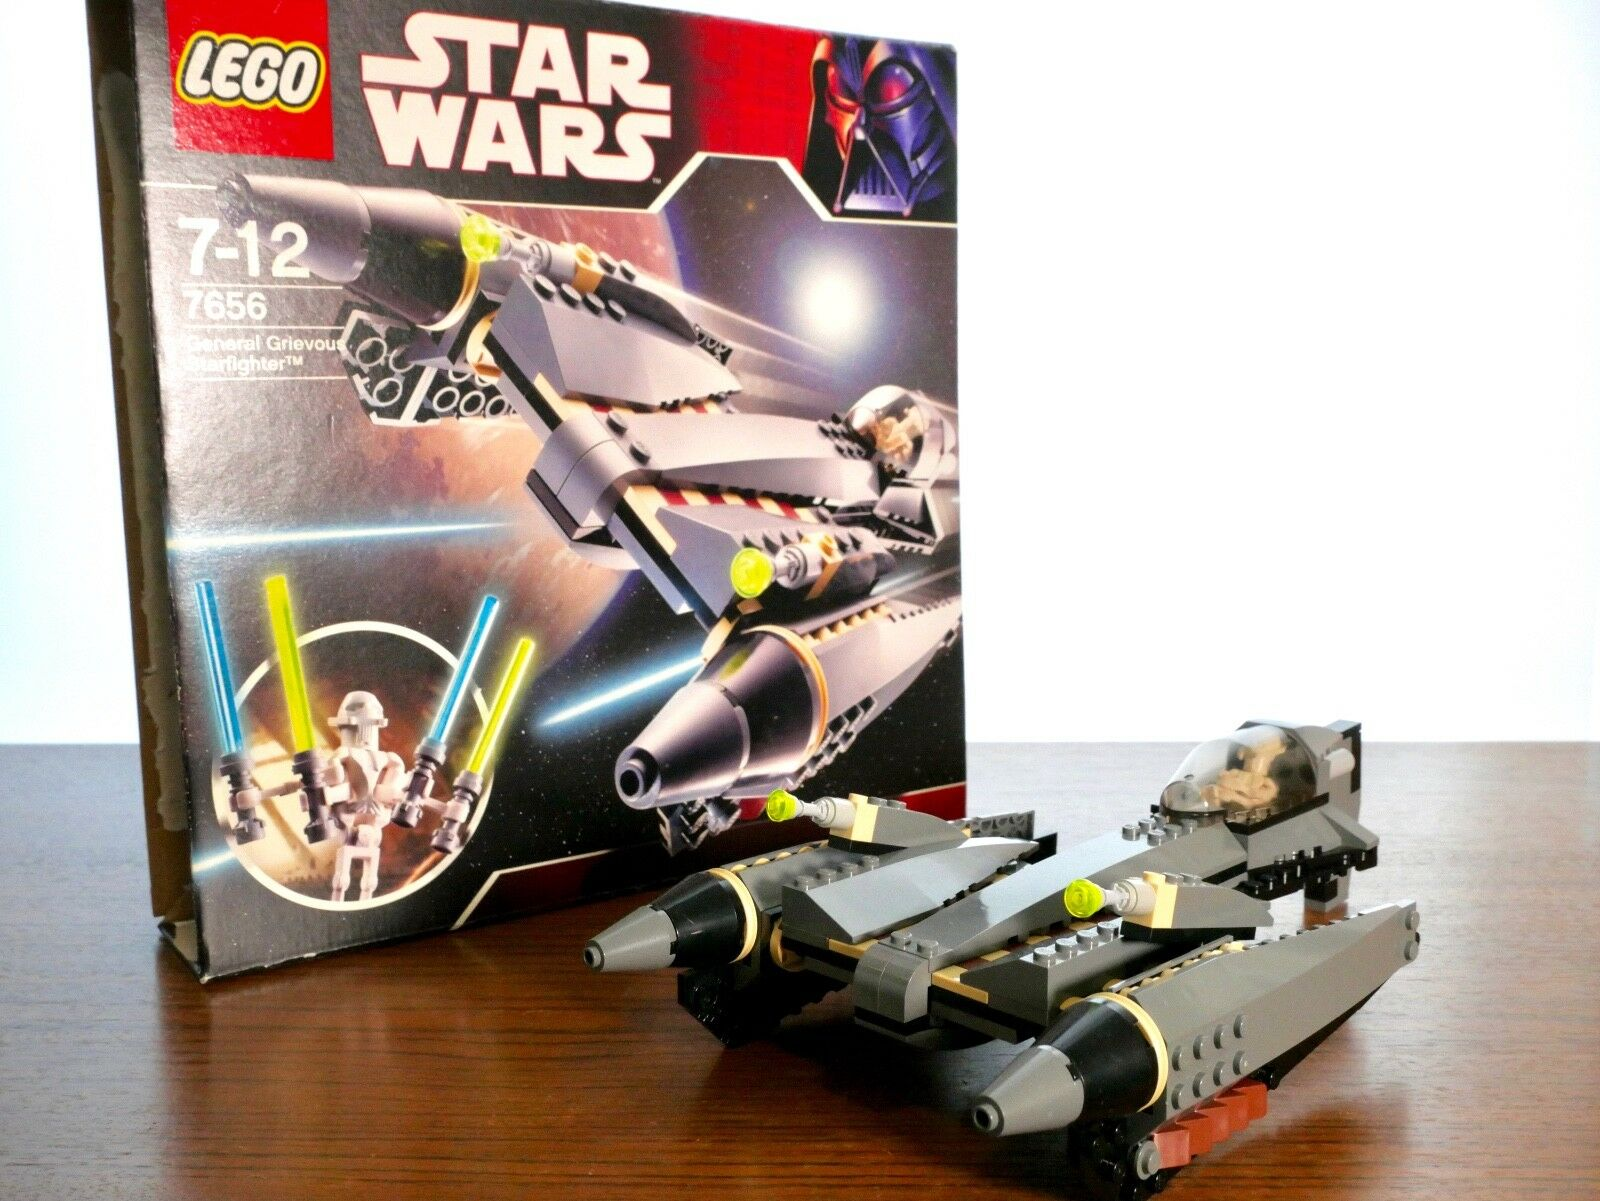 LEGO Star Wars 7656 General Grievous Starfighter - Box & Instructions